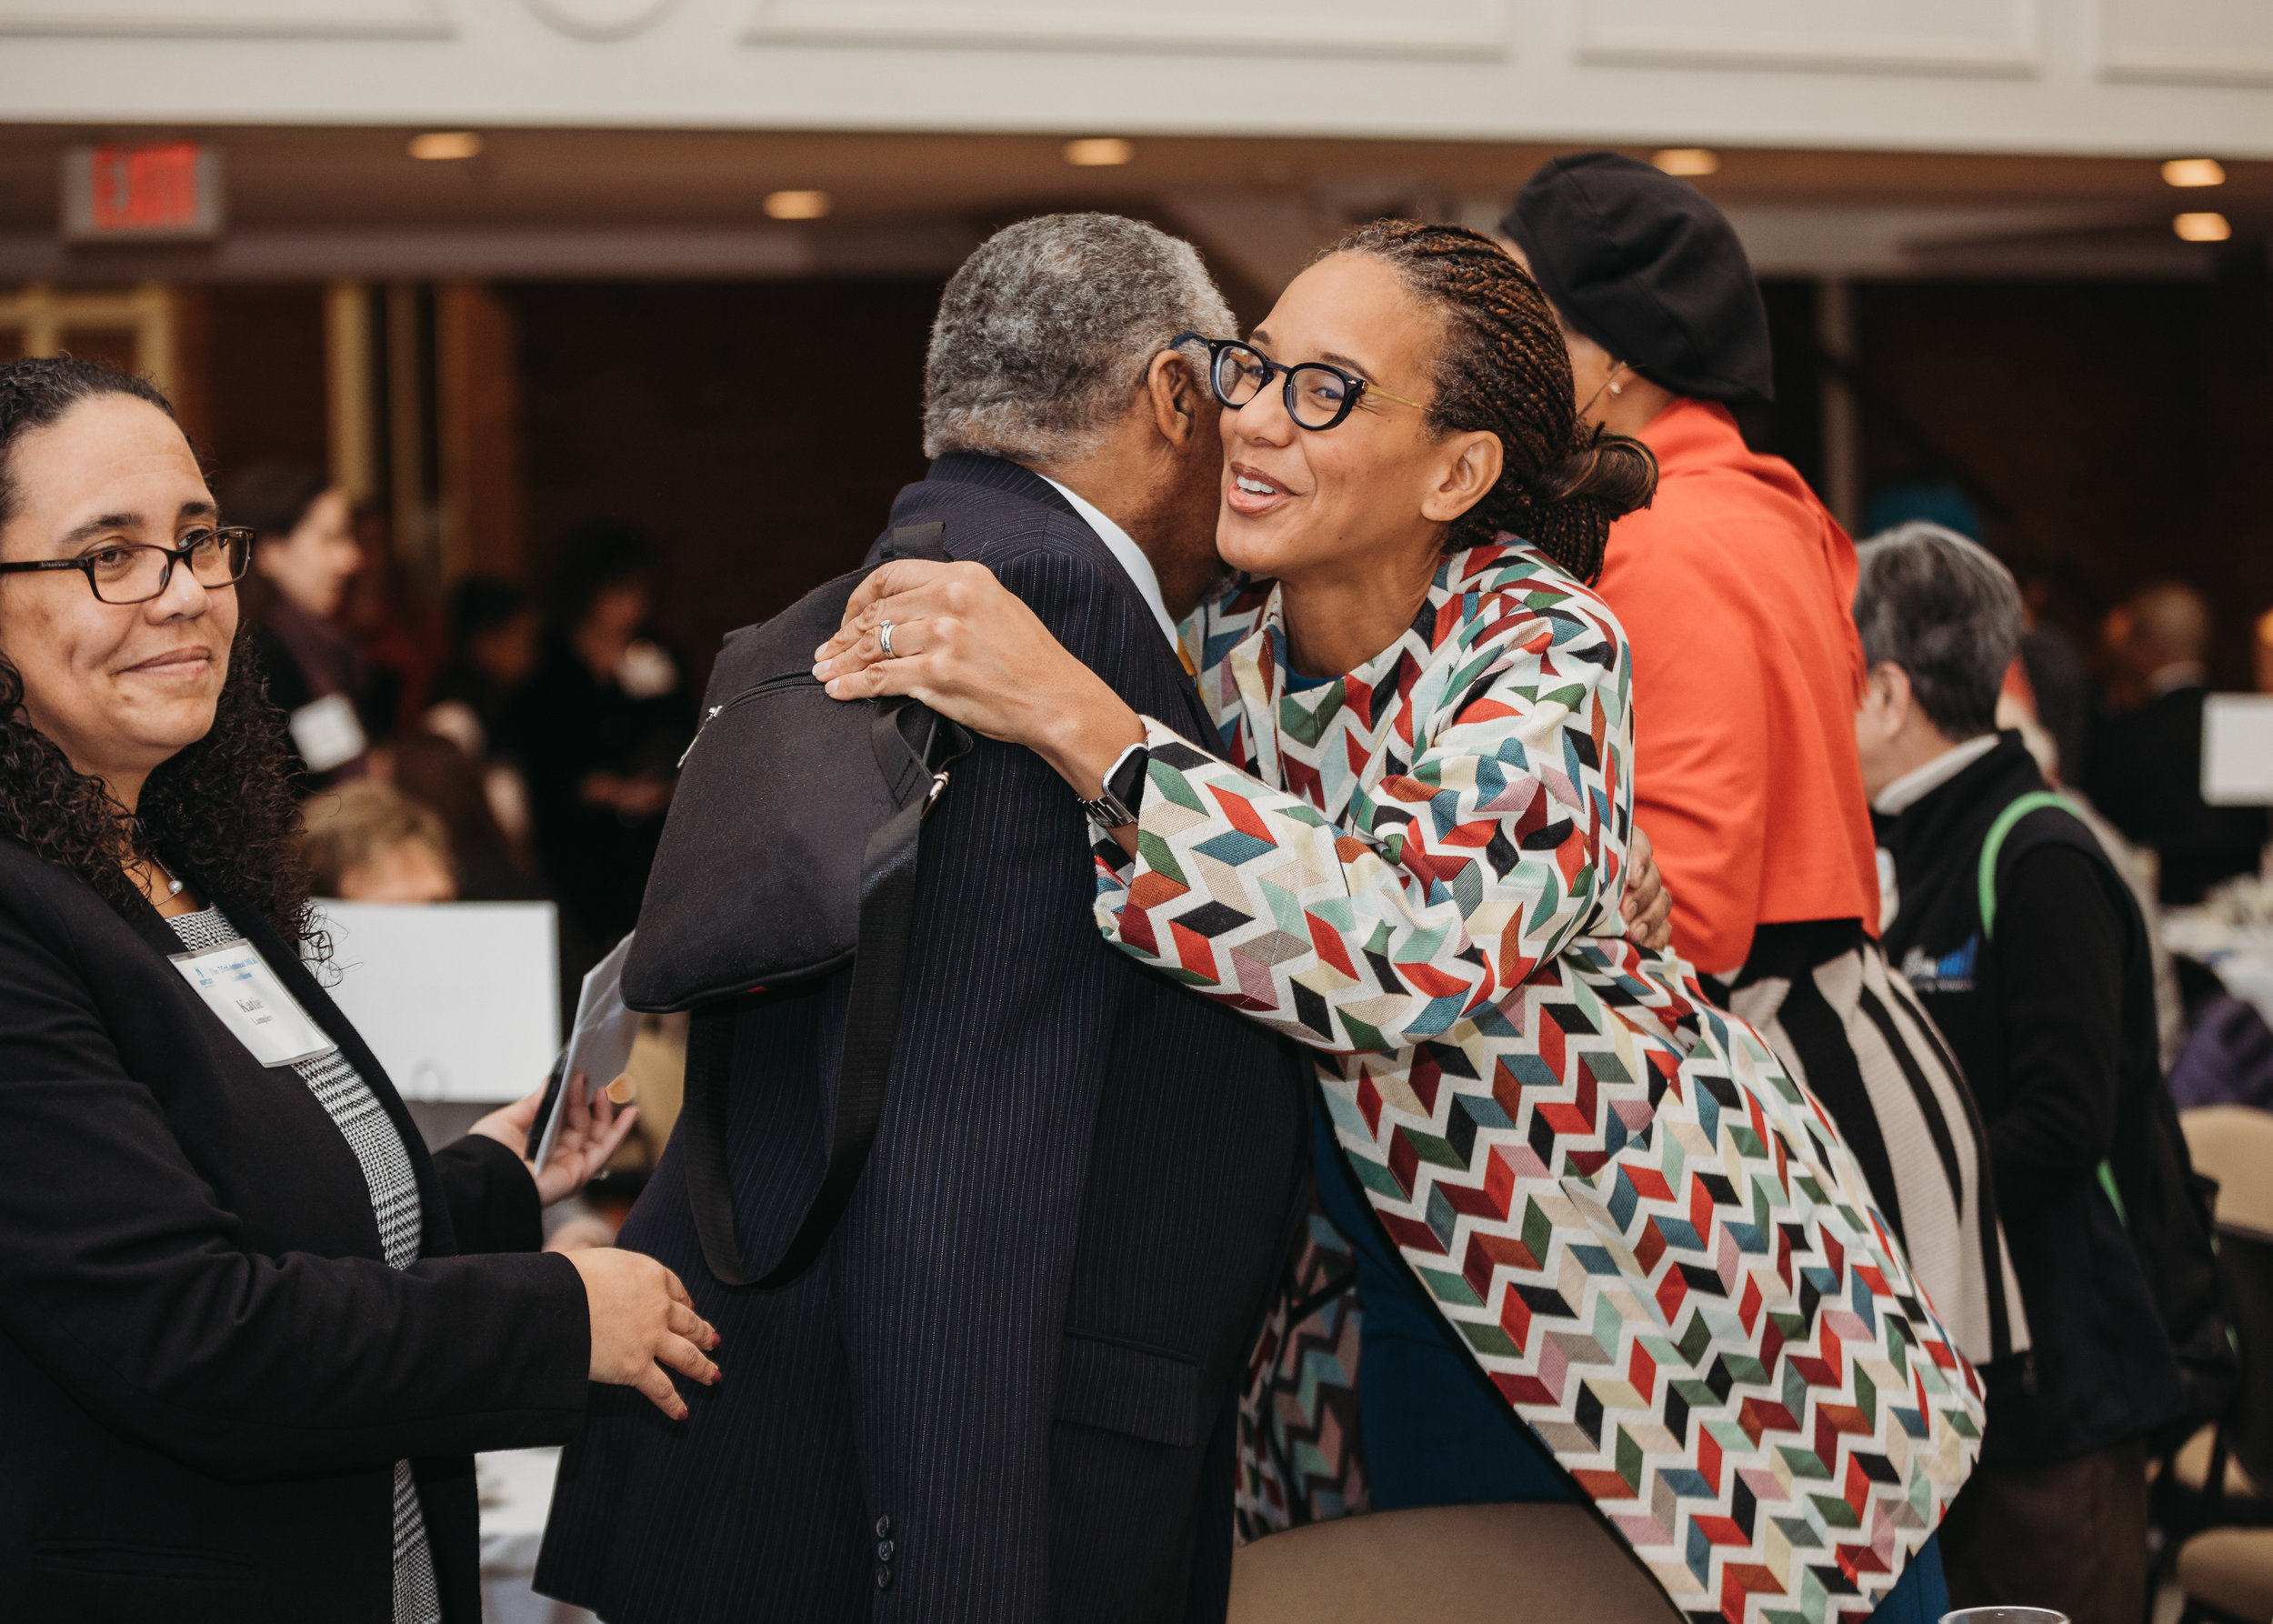 Earl Avery greeting friends and family at the MLK Luncheon/retirement celebration. Boston photographer Joy LeDuc. Capturing emotion at corporate events.